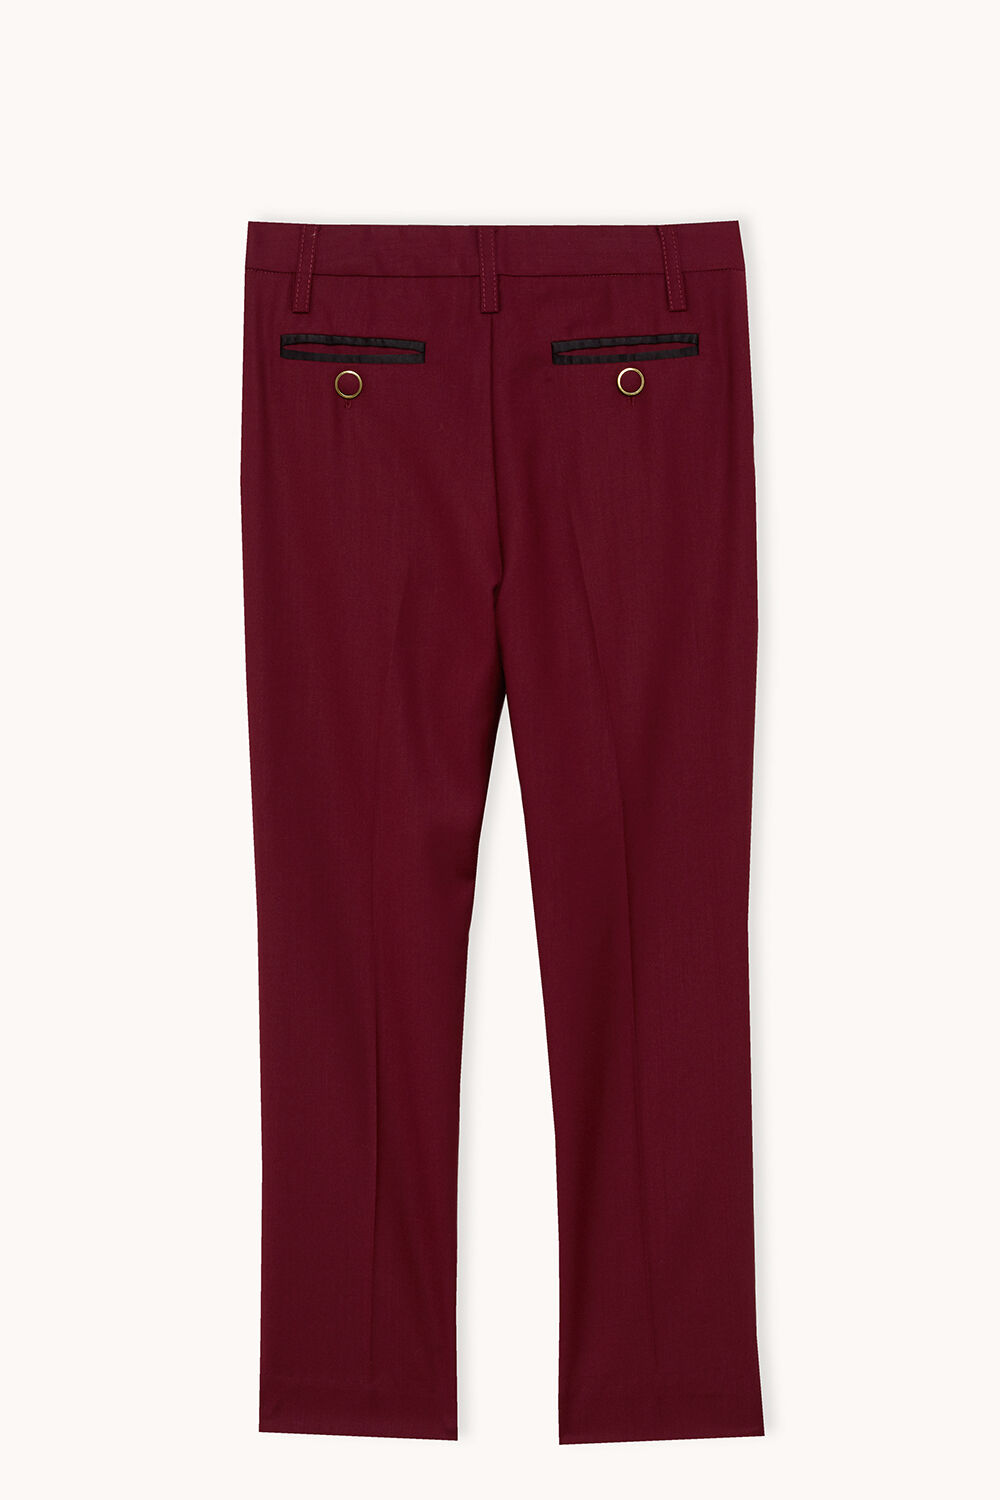 junior boy tapered suit pant in colour BURGUNDY